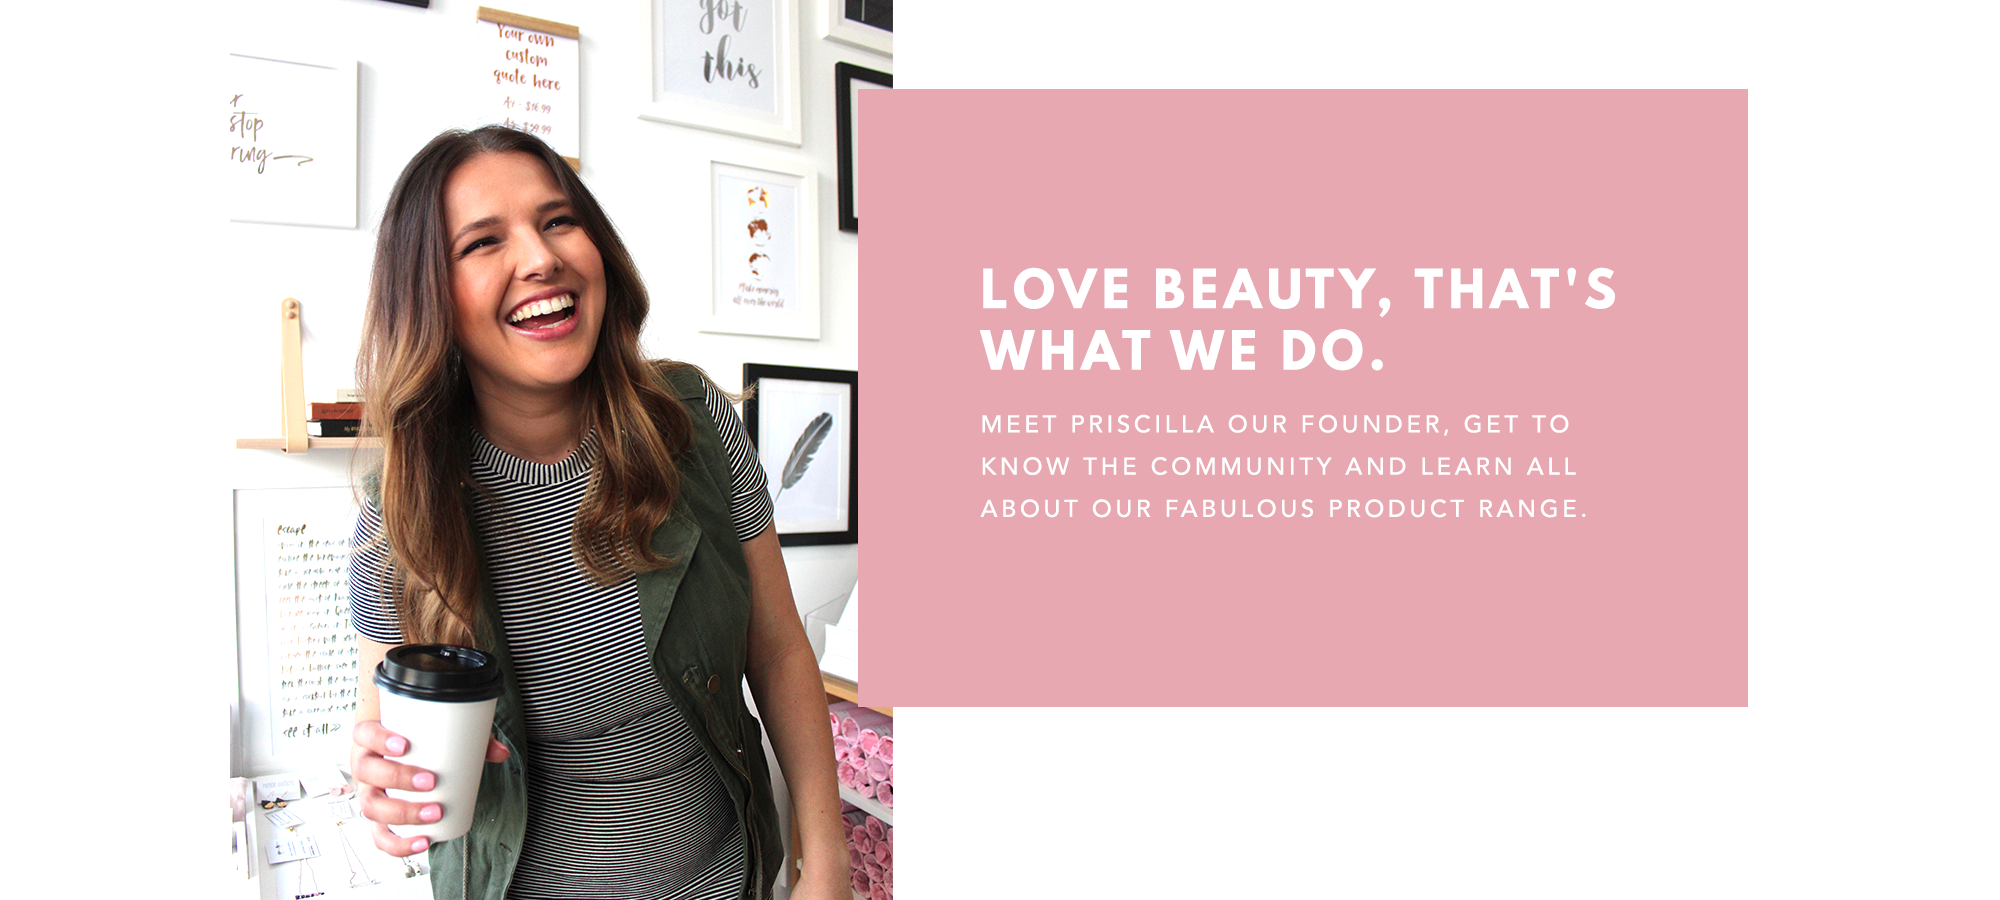 Love Beauty Co About Us Page